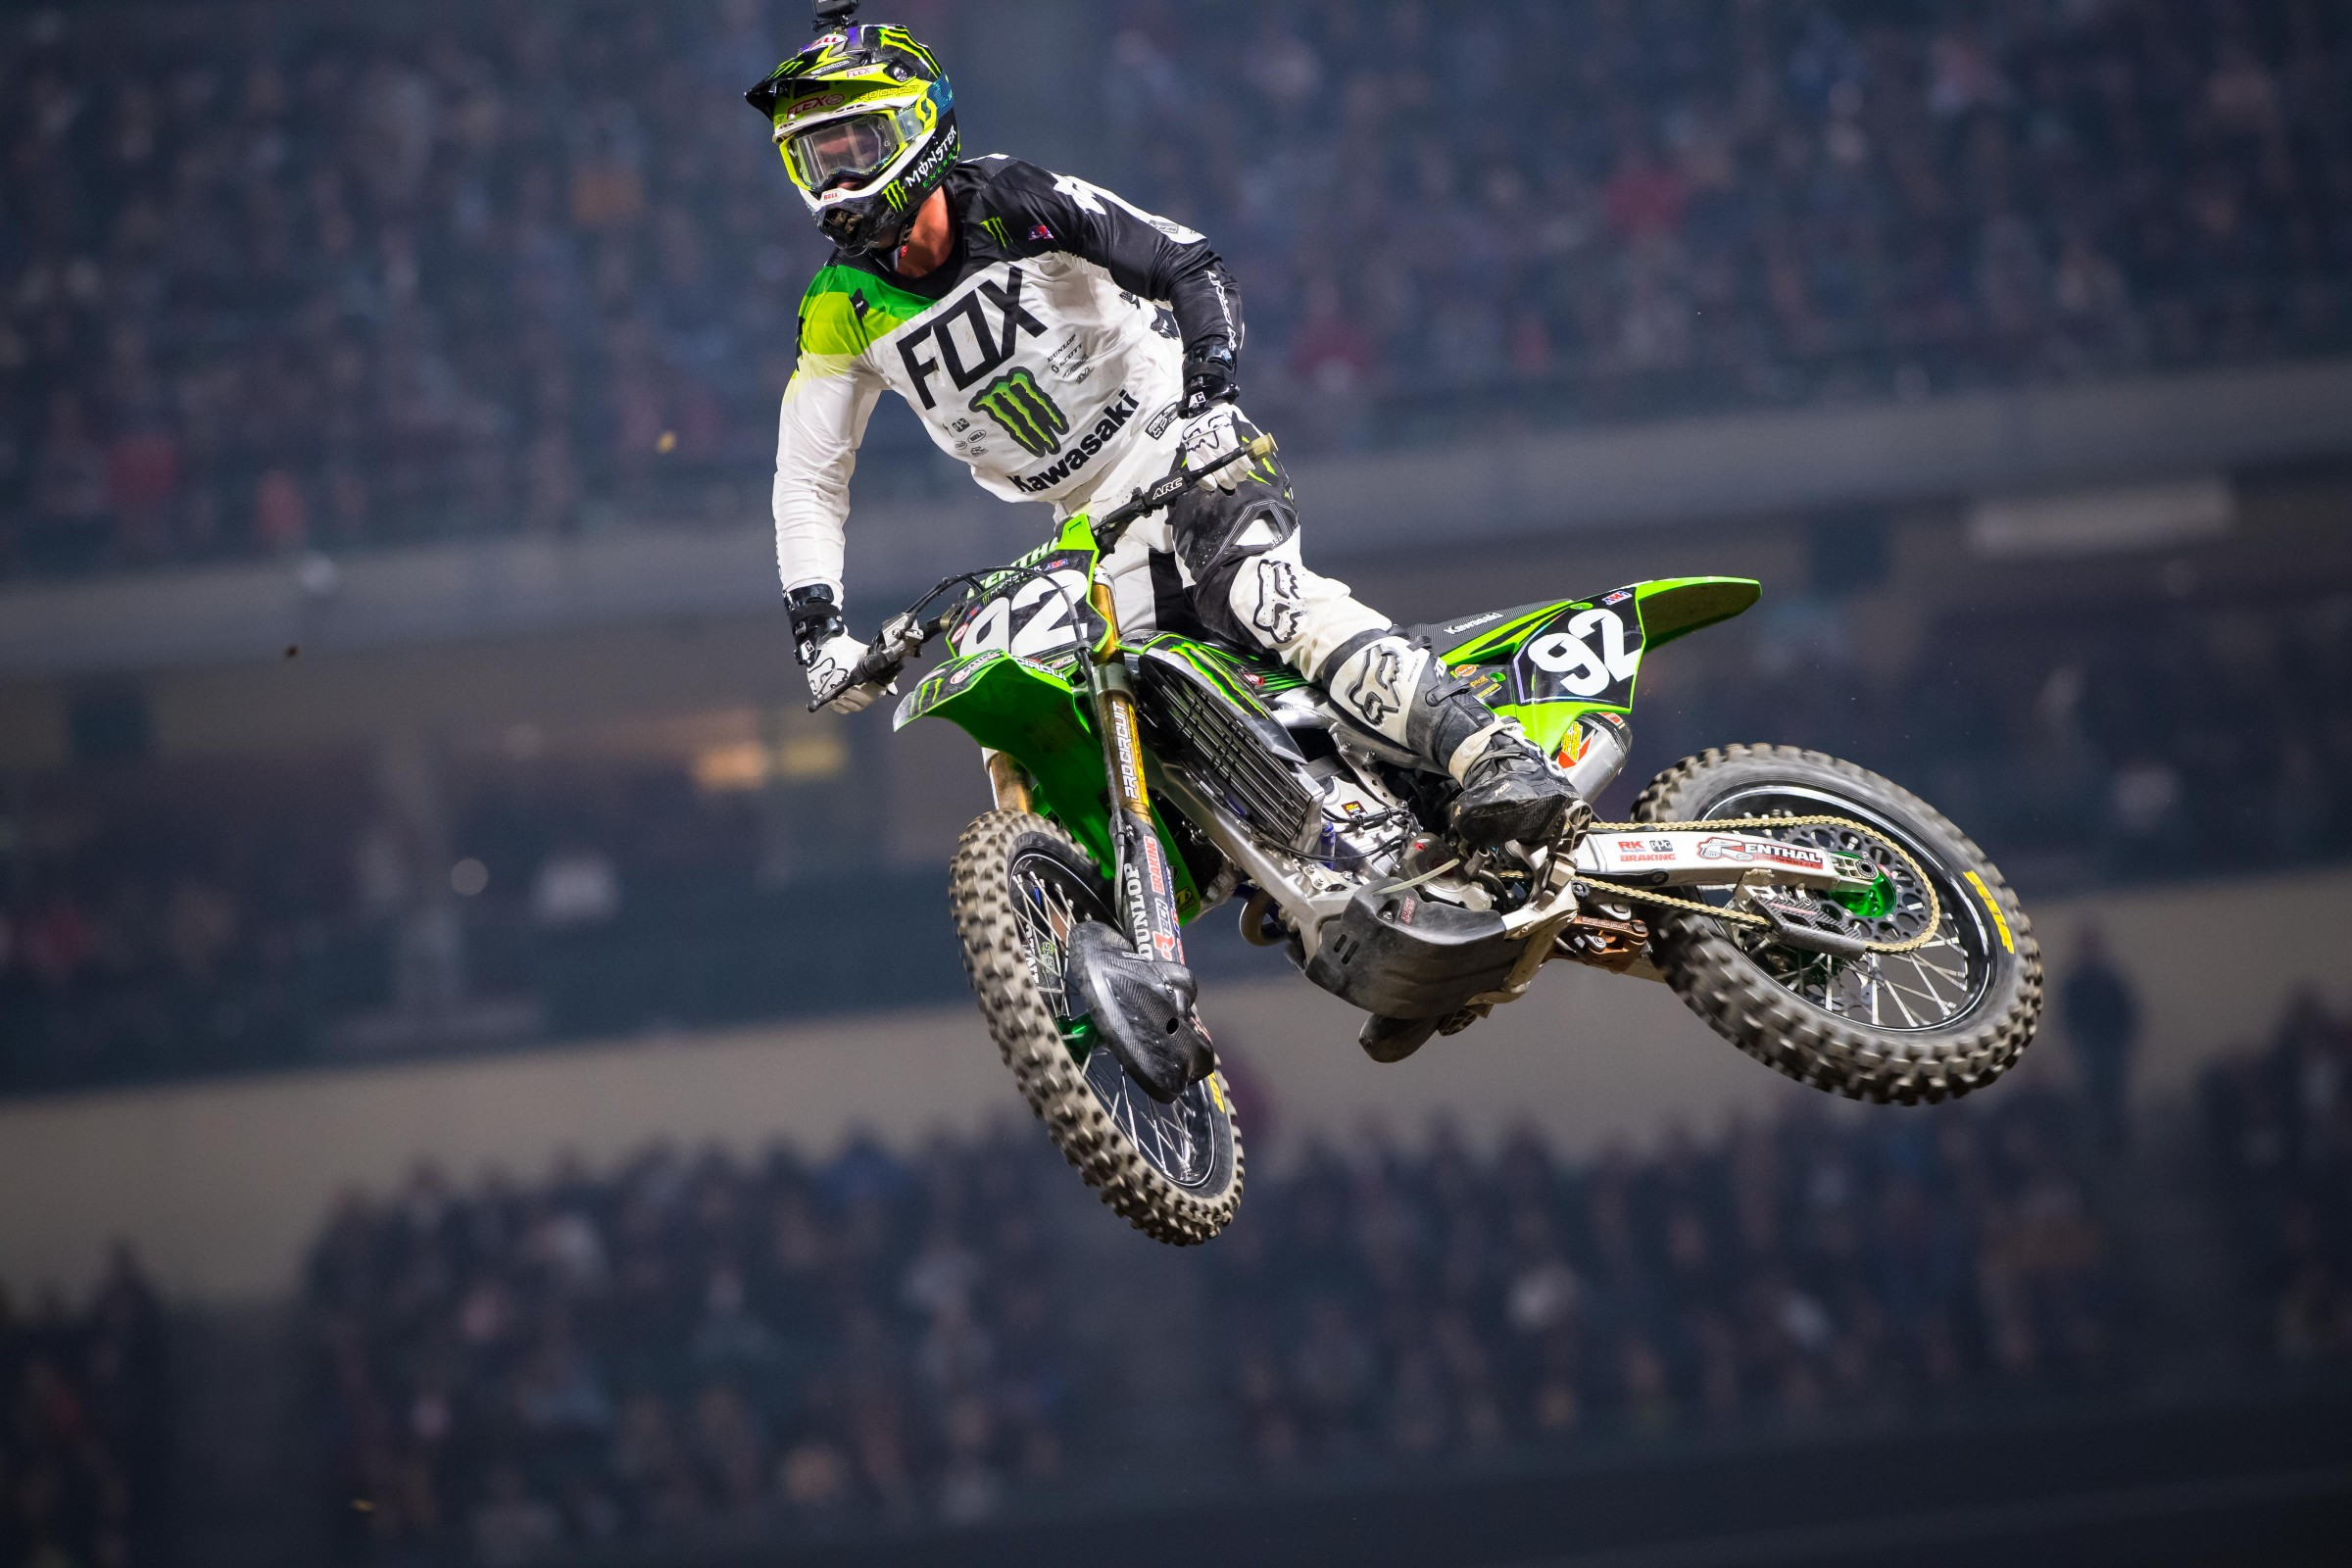 Cianciarulo made the podium behind Shane McElrath and Aaron Plessinger.